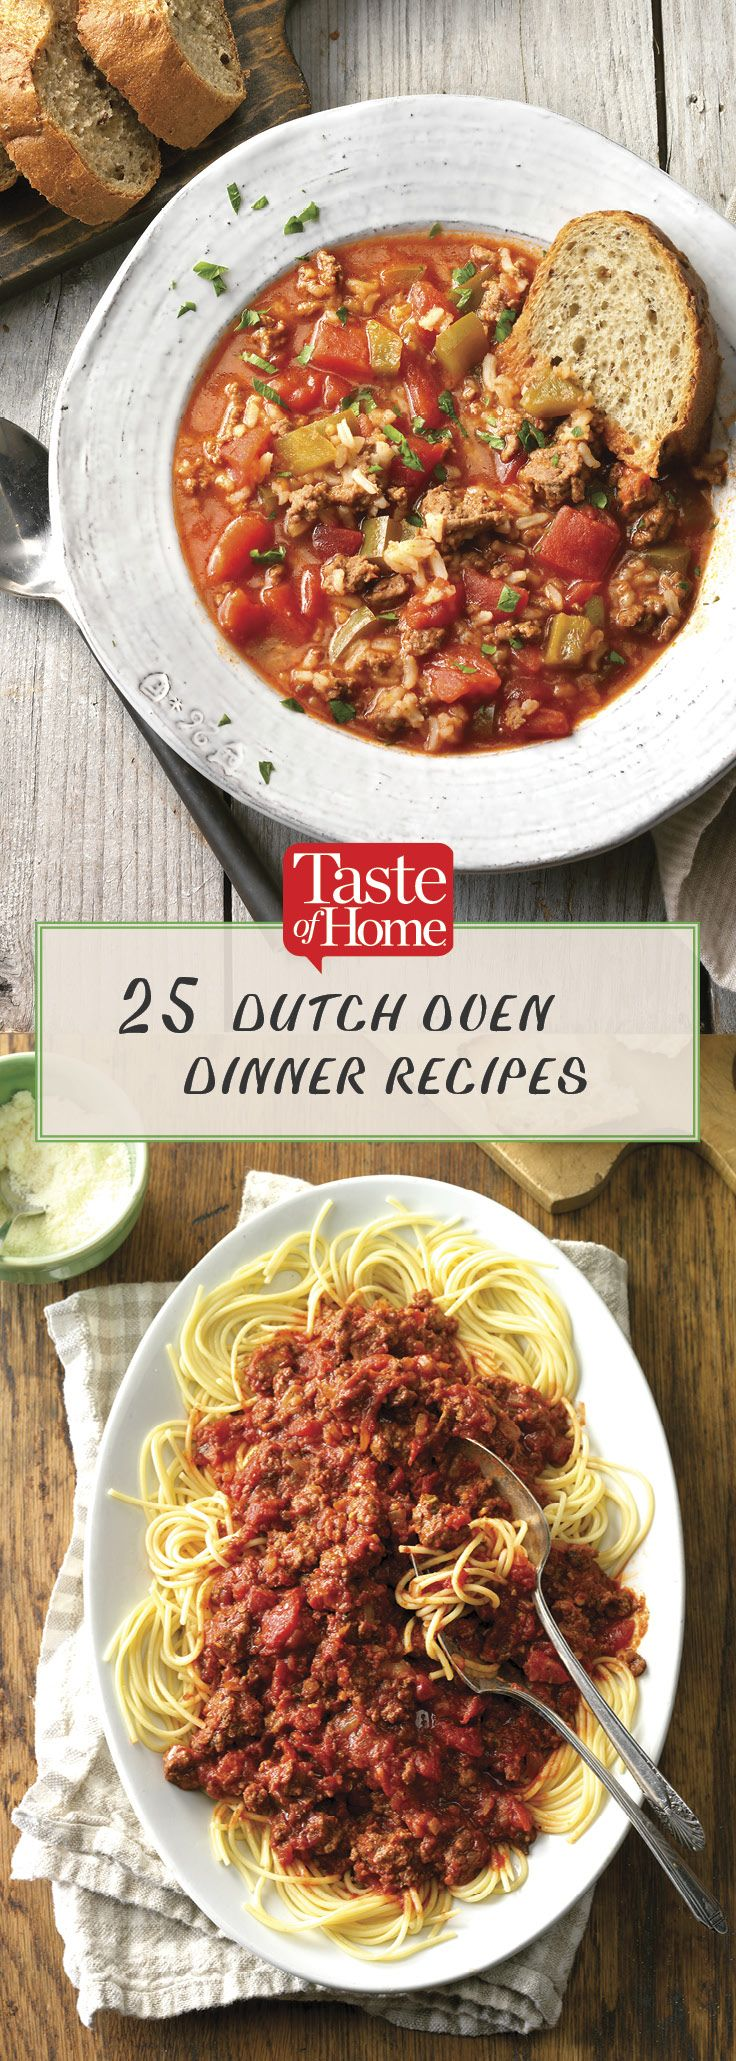 25 Dutch Oven Dinner Recipes